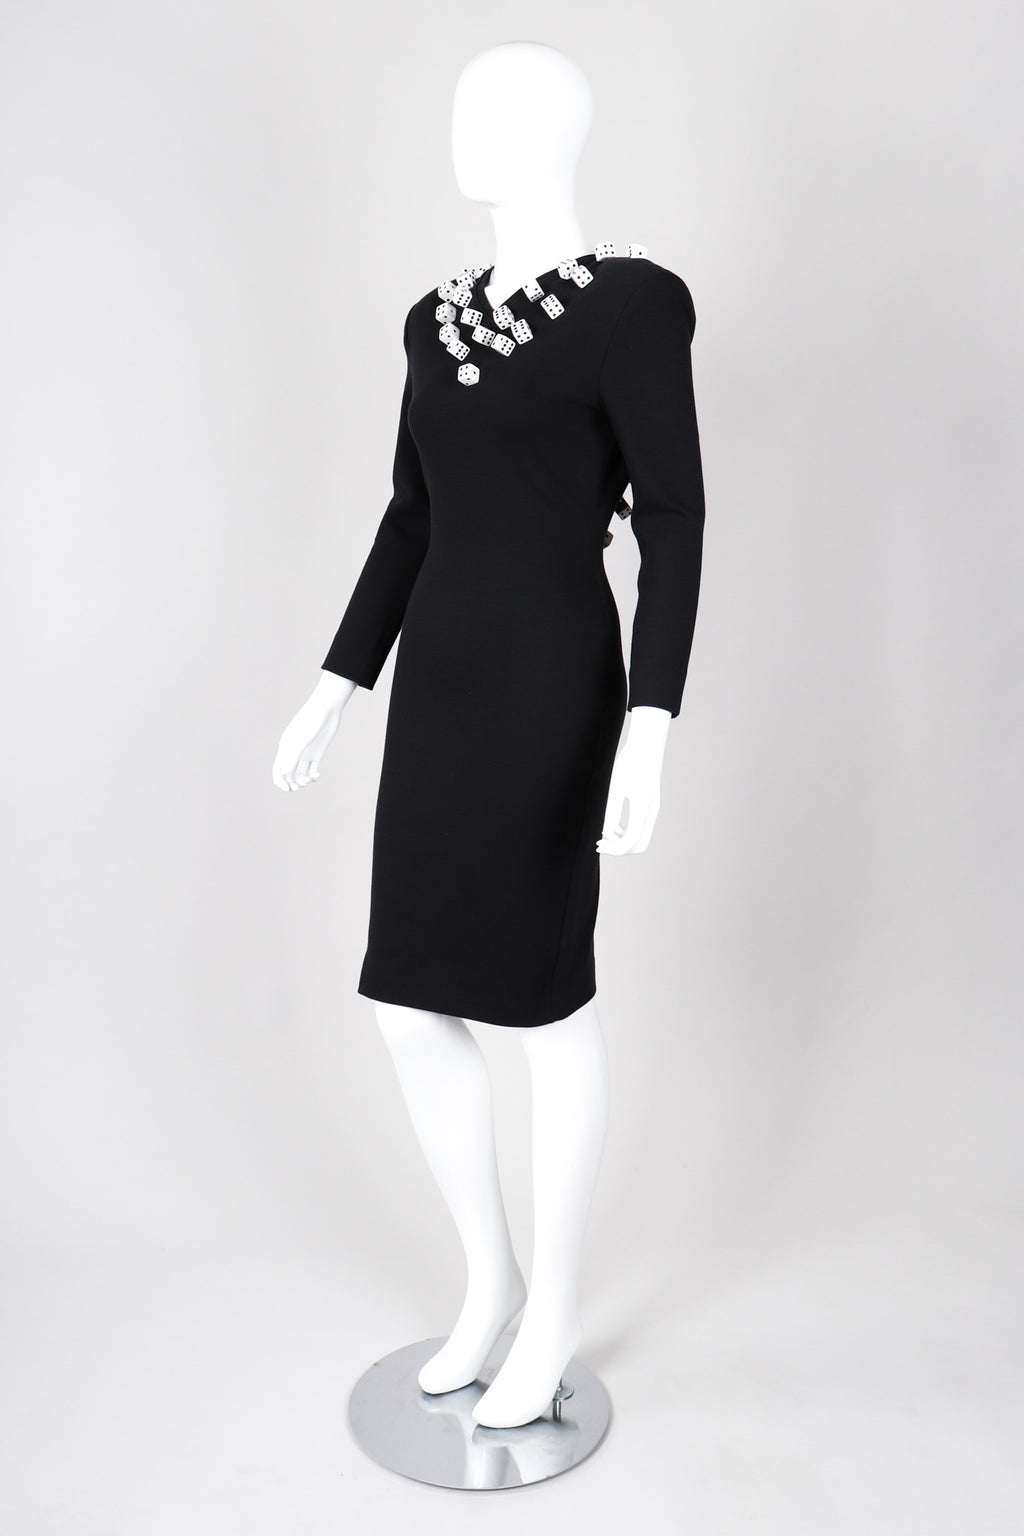 Recess Los Angeles Vintage Patrick Kelly Spandex Dice Black Dress Open V-Back